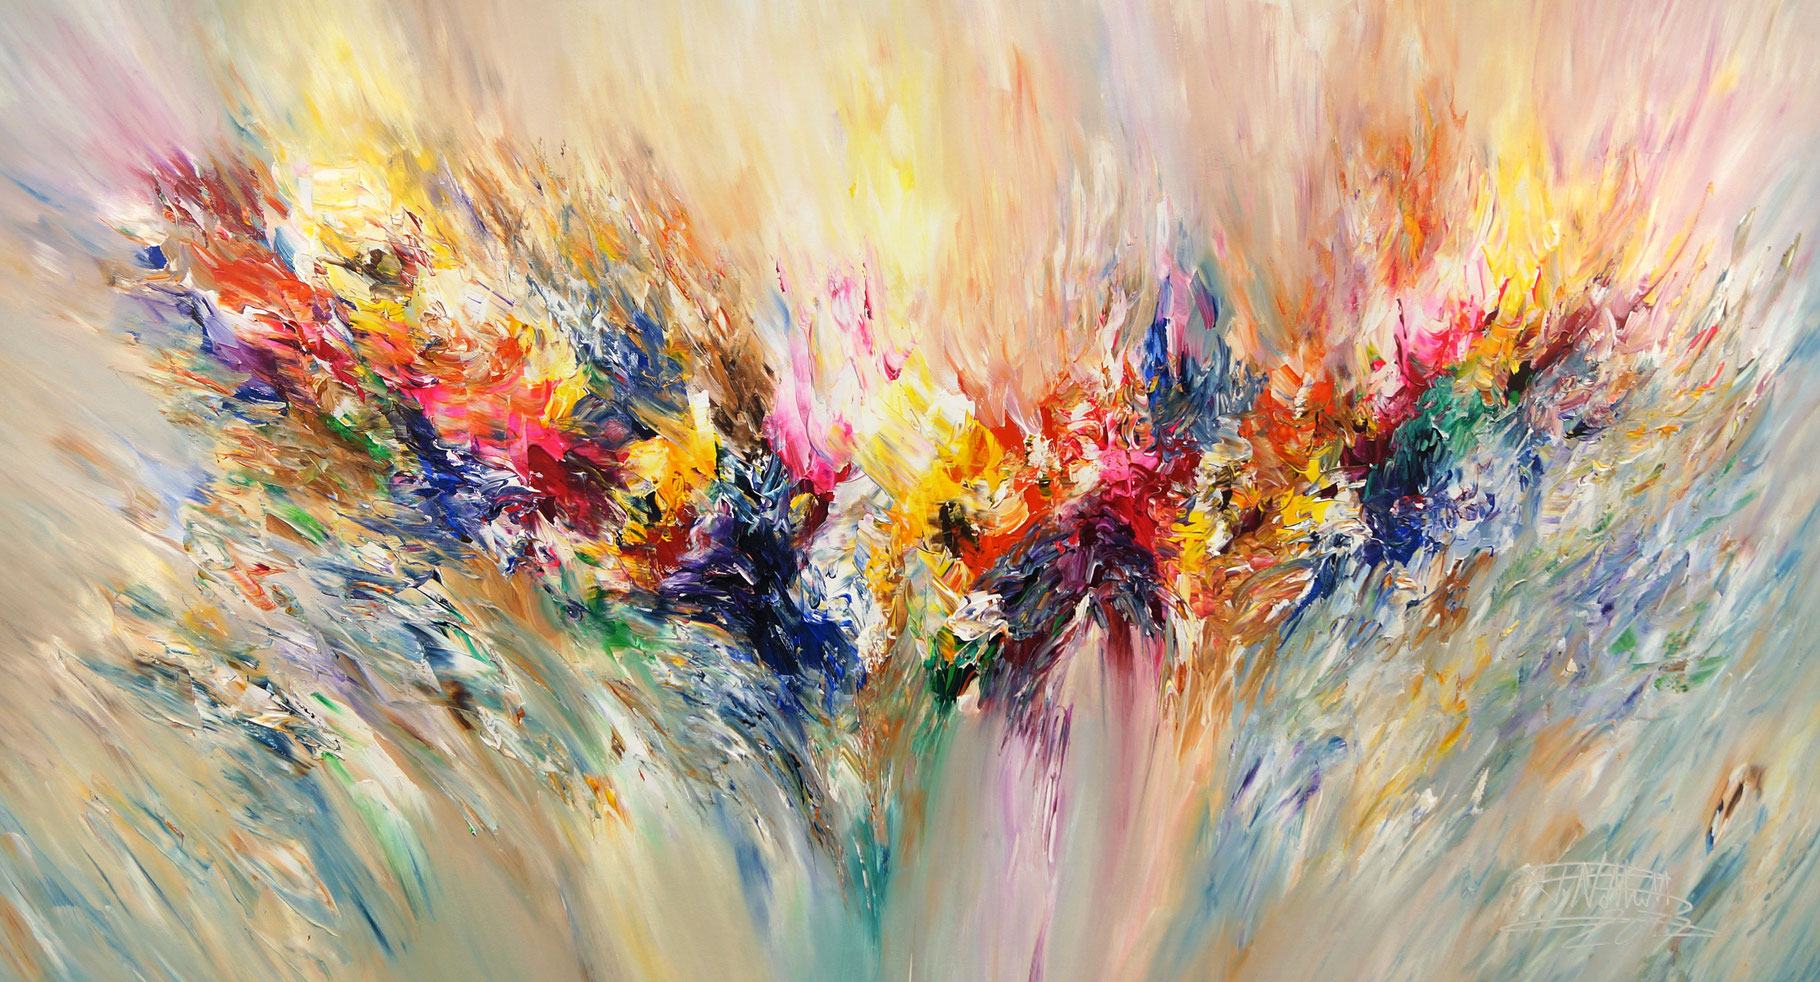 Xxl Art positive energy xxl 2 - large abstract painting art for sale